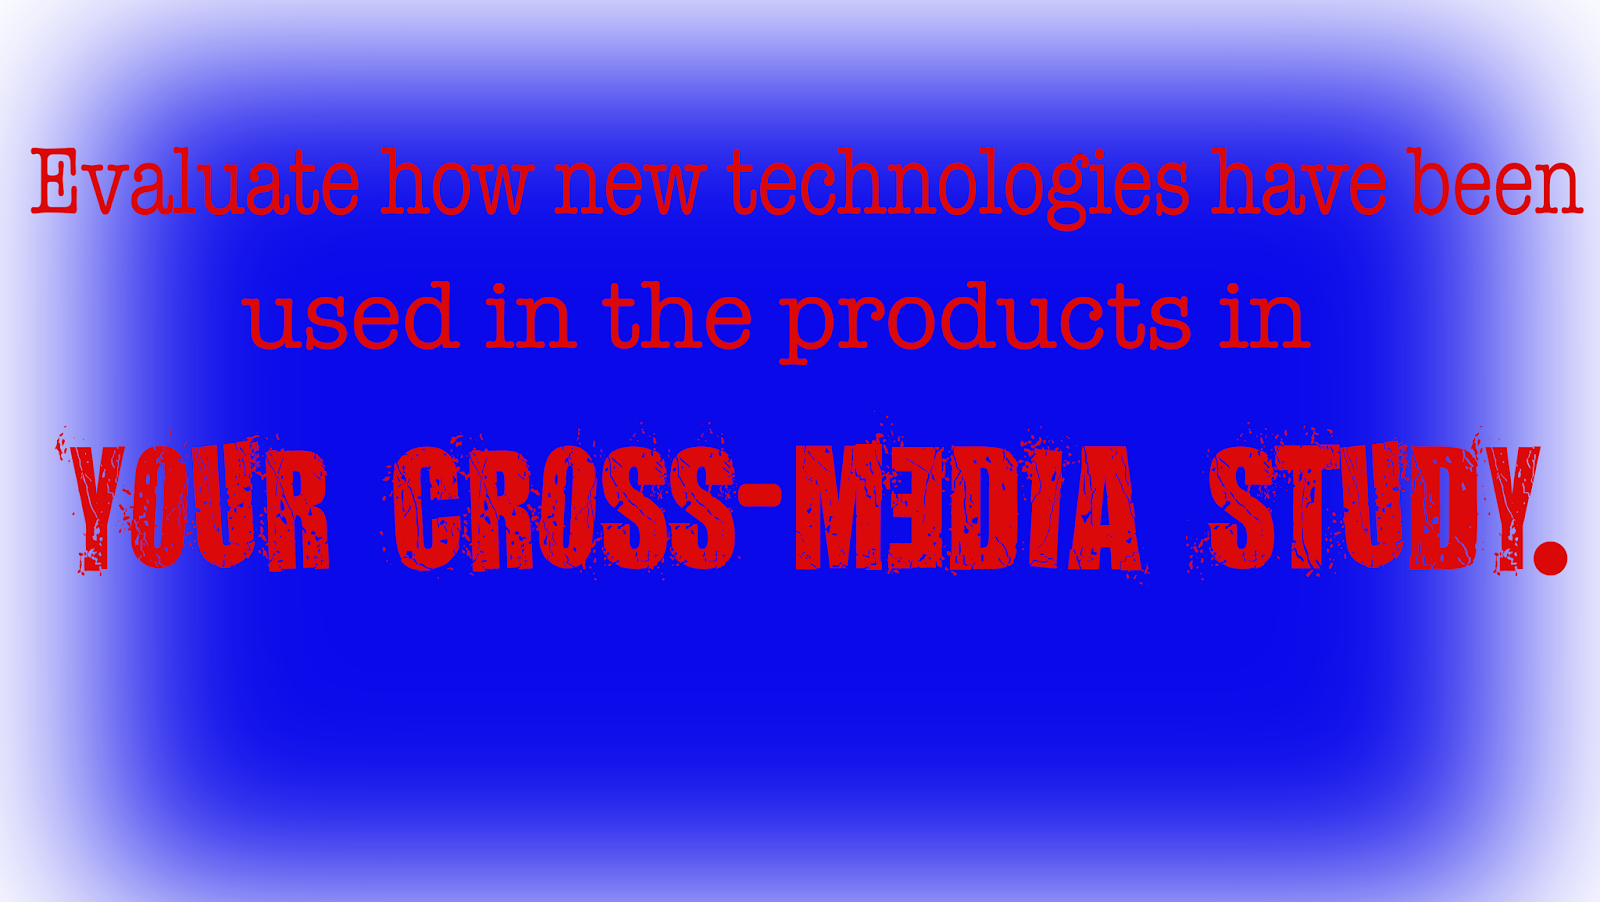 fishymedia resources for a as media studies  the aim of today s lesson was to discuss possible content for the second cross media study essay the question that will dictate the content of the second